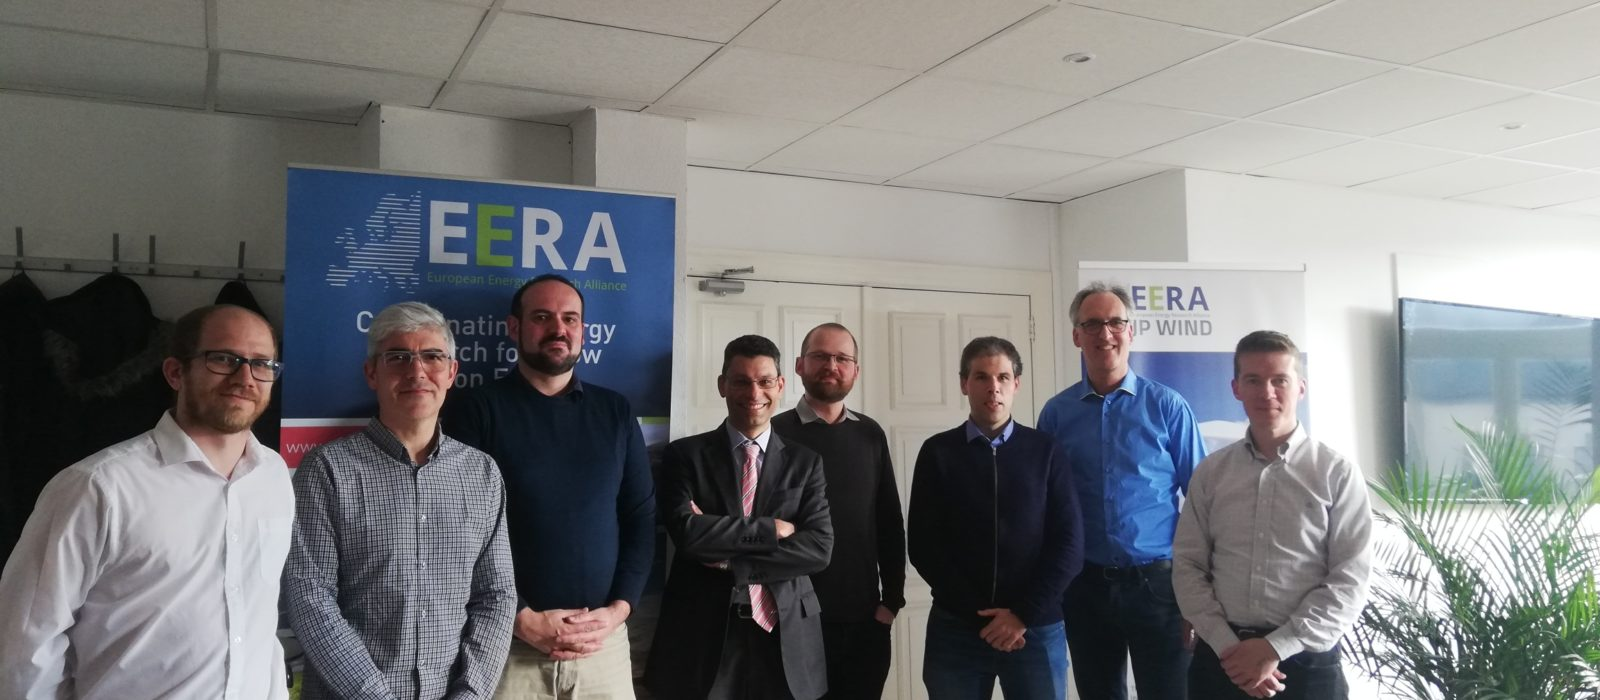 With a dedicated group of EERA JPWind members in Brussels and others through webex, we got a good meeting to discuss R&I priorities for wind energy.